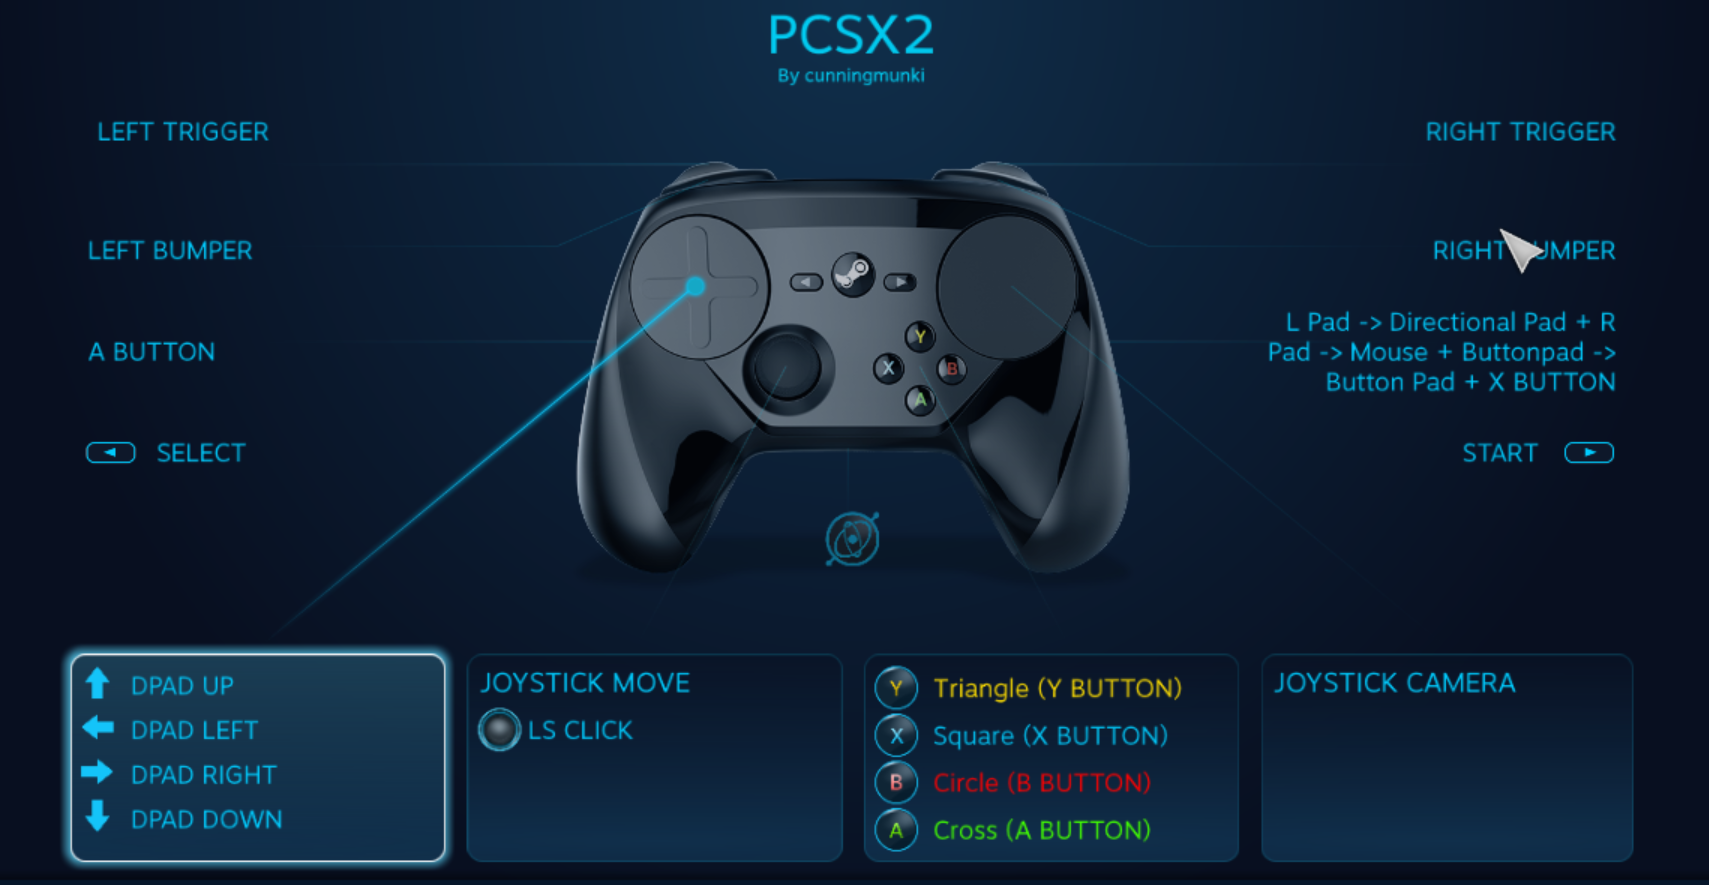 how to use ps4 controller with pcsx2